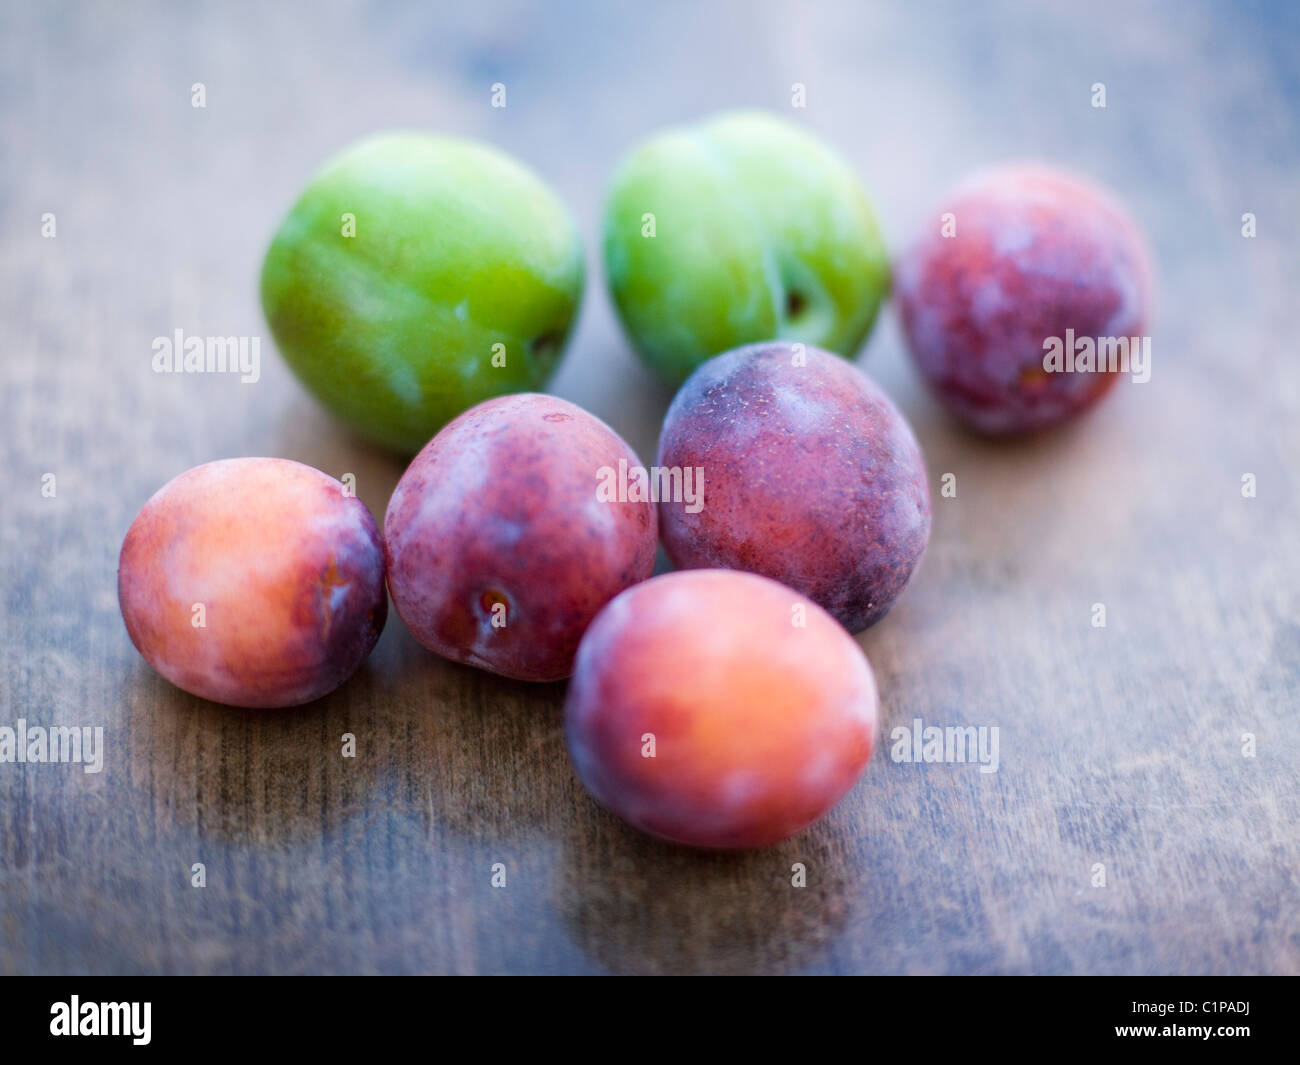 Green and purple plums on wooden table Stock Photo